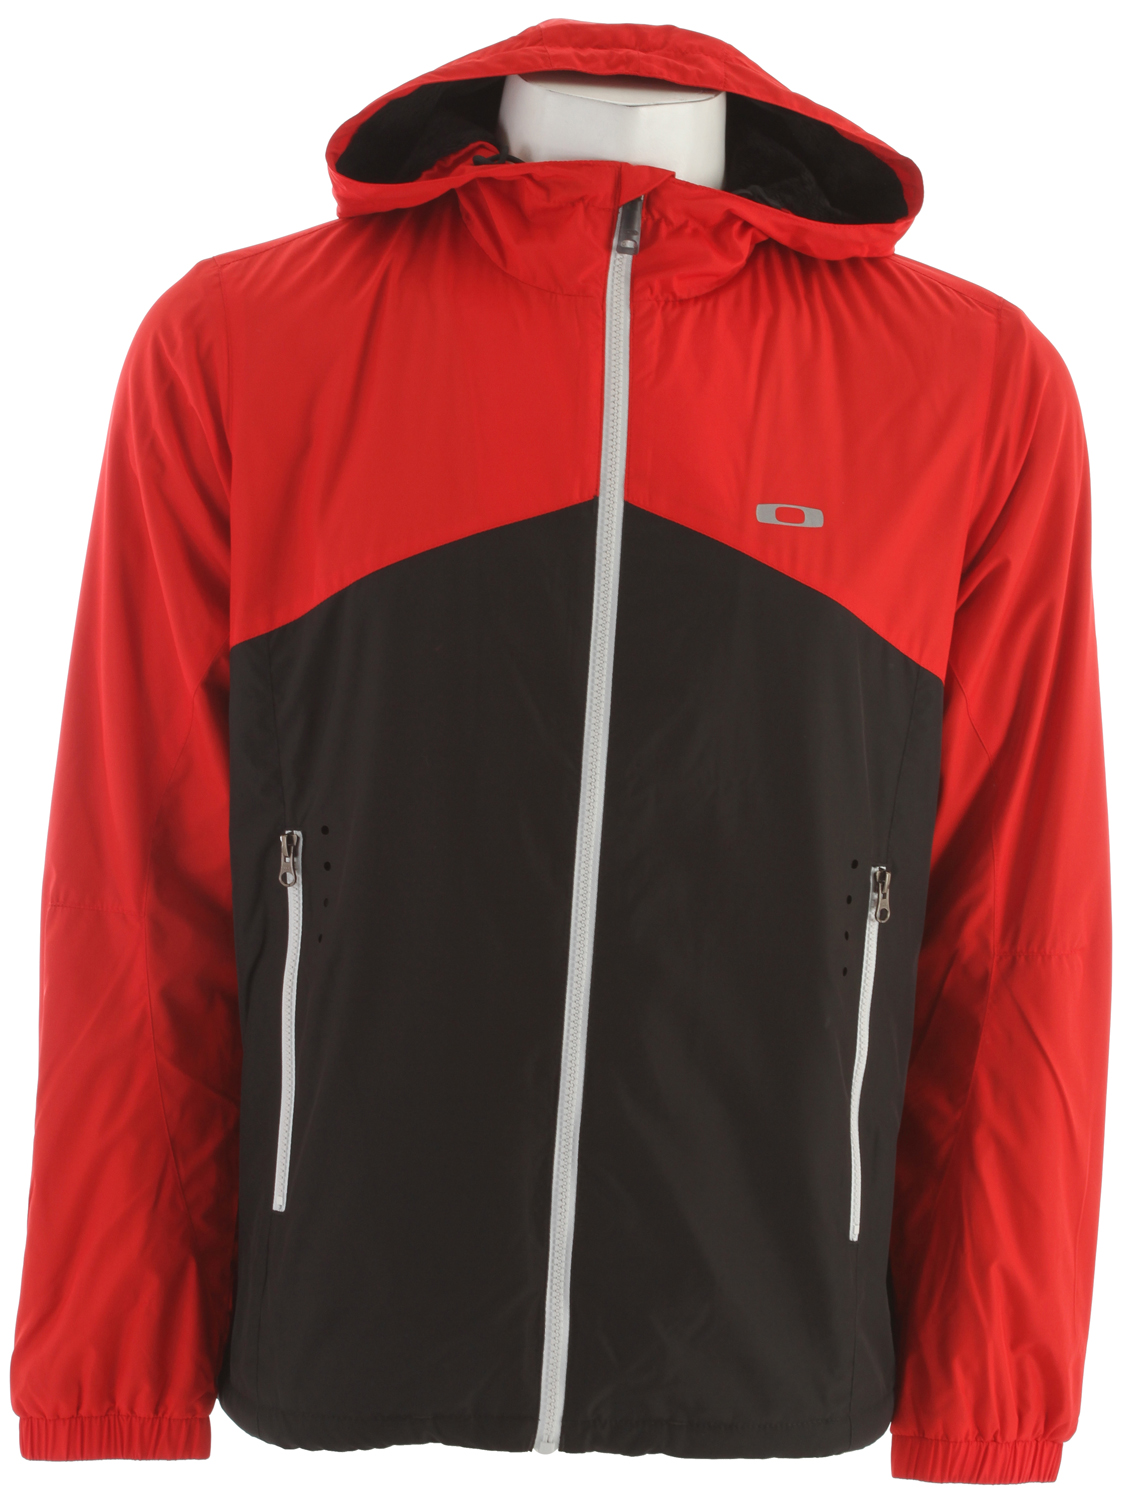 Snowboard Key Features of the Oakley Can Do Snowboard Jacket: DWR full zip color blocked hooded windbreaker with sherpa lining Exposed zipper pocket Elastic Cuffs Pocket drain system Reflective front and back screen print logo 100% Polyester - $99.95